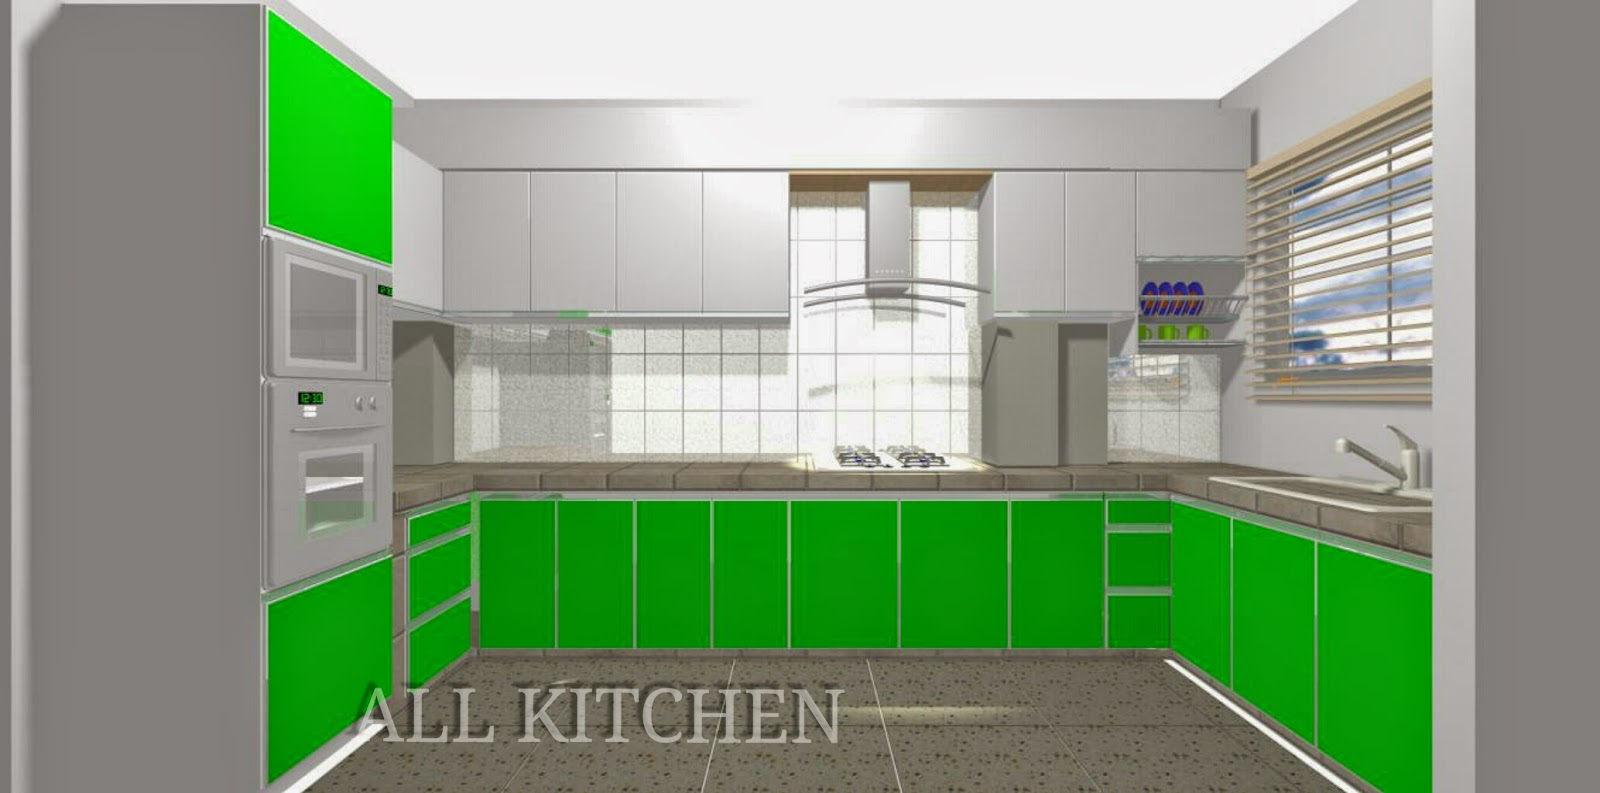 All Kitchen Kabinet Dapur